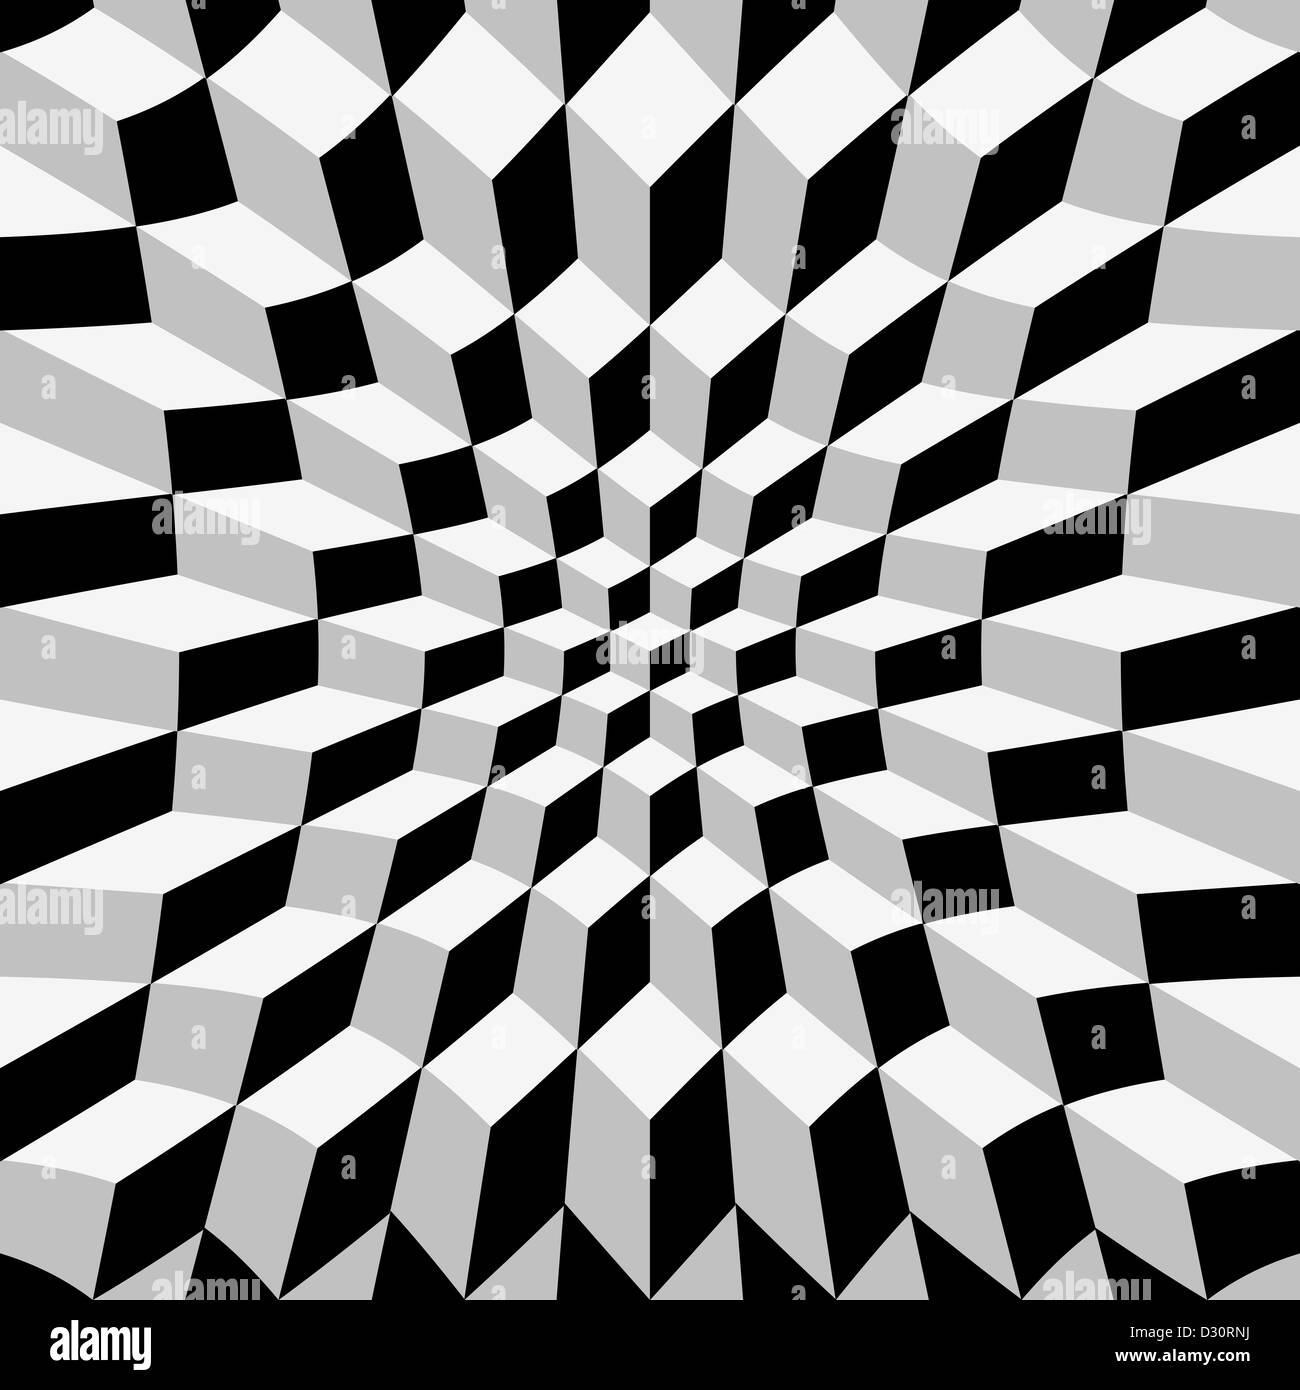 Abstrat warped cube background, op art - Stock Image